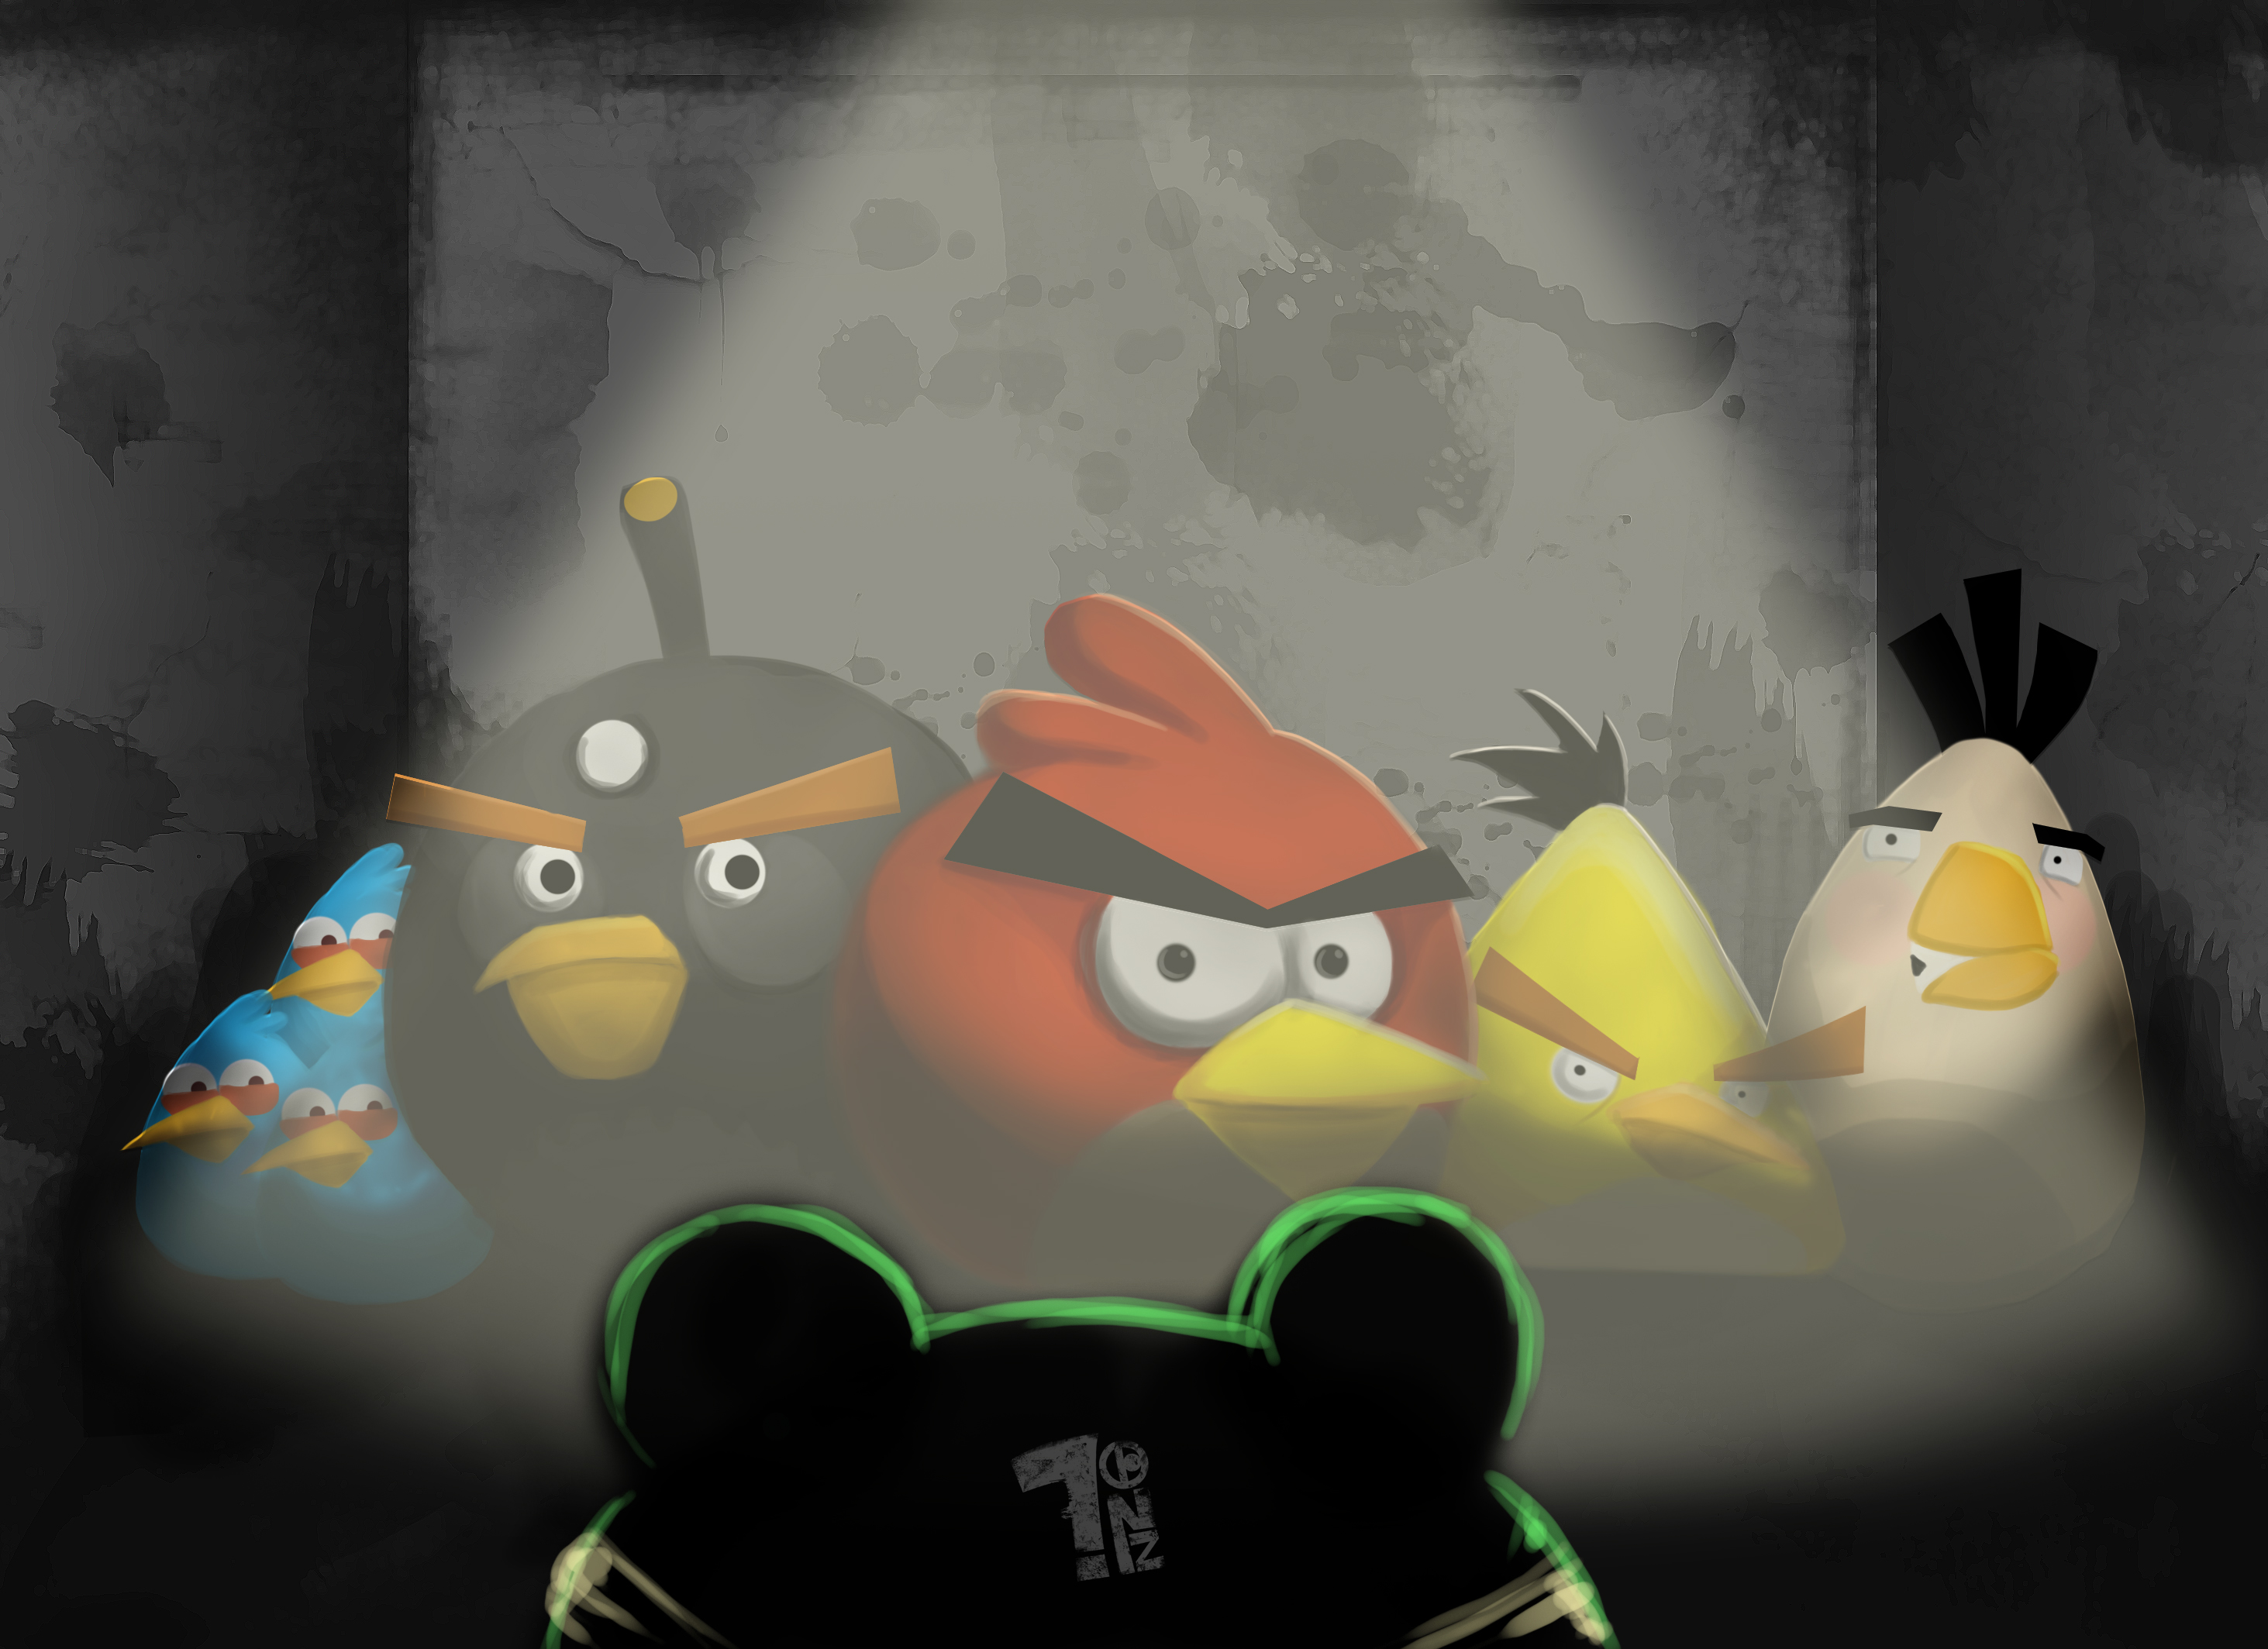 Angry Birds Wallpaper 6   PCTechNotes PC Tips Tricks and Tweaks 2926x2128